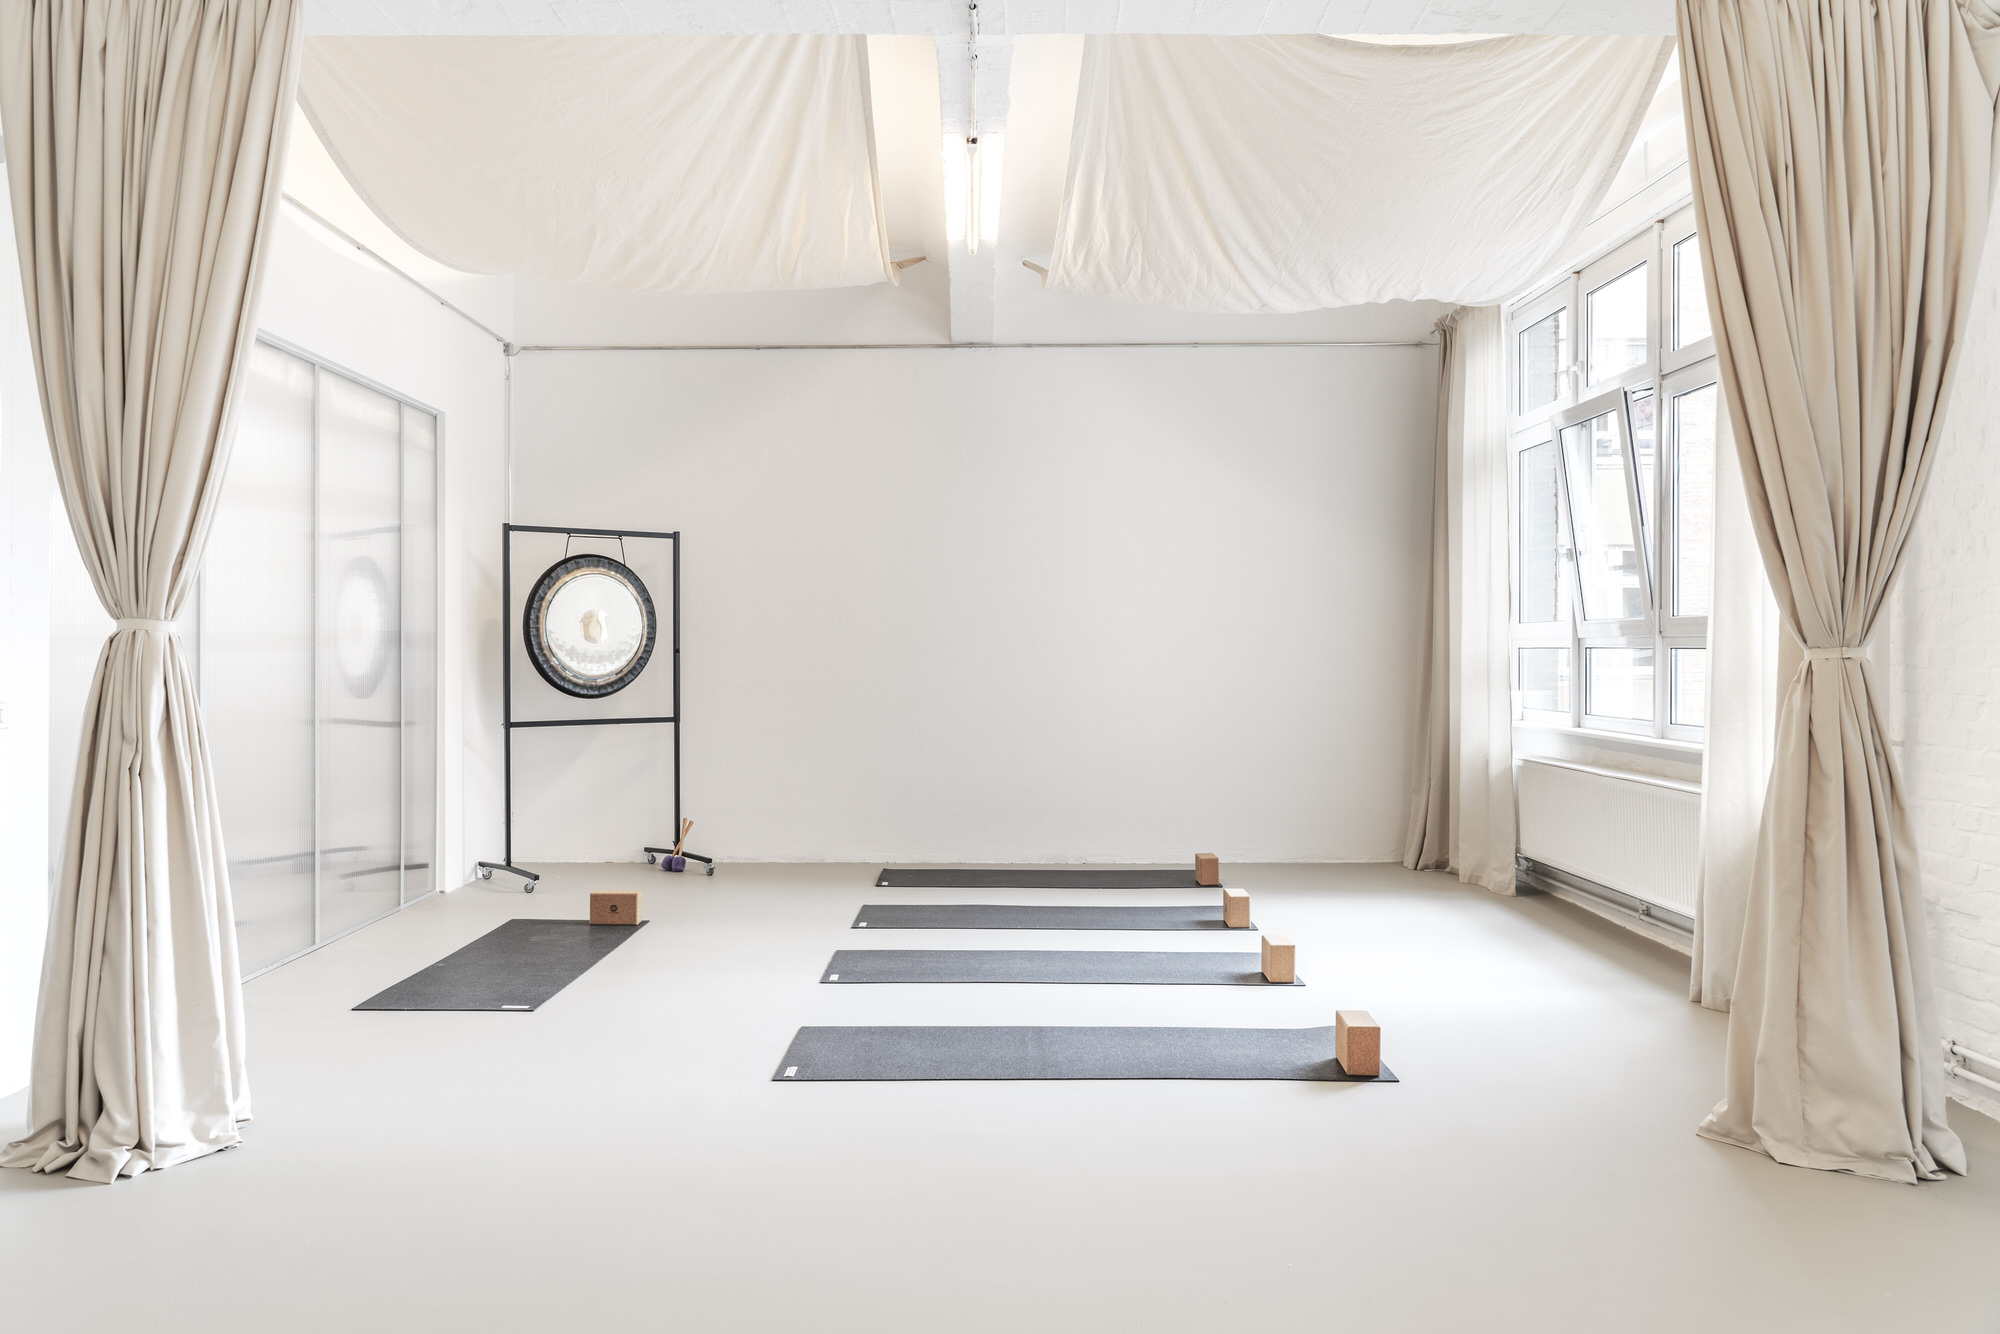 Some Place Studio, Original Feelings Yoga Studio Berlin, Wellness Interior Design, Photo Linus Muellerschoen | Yellowtrace